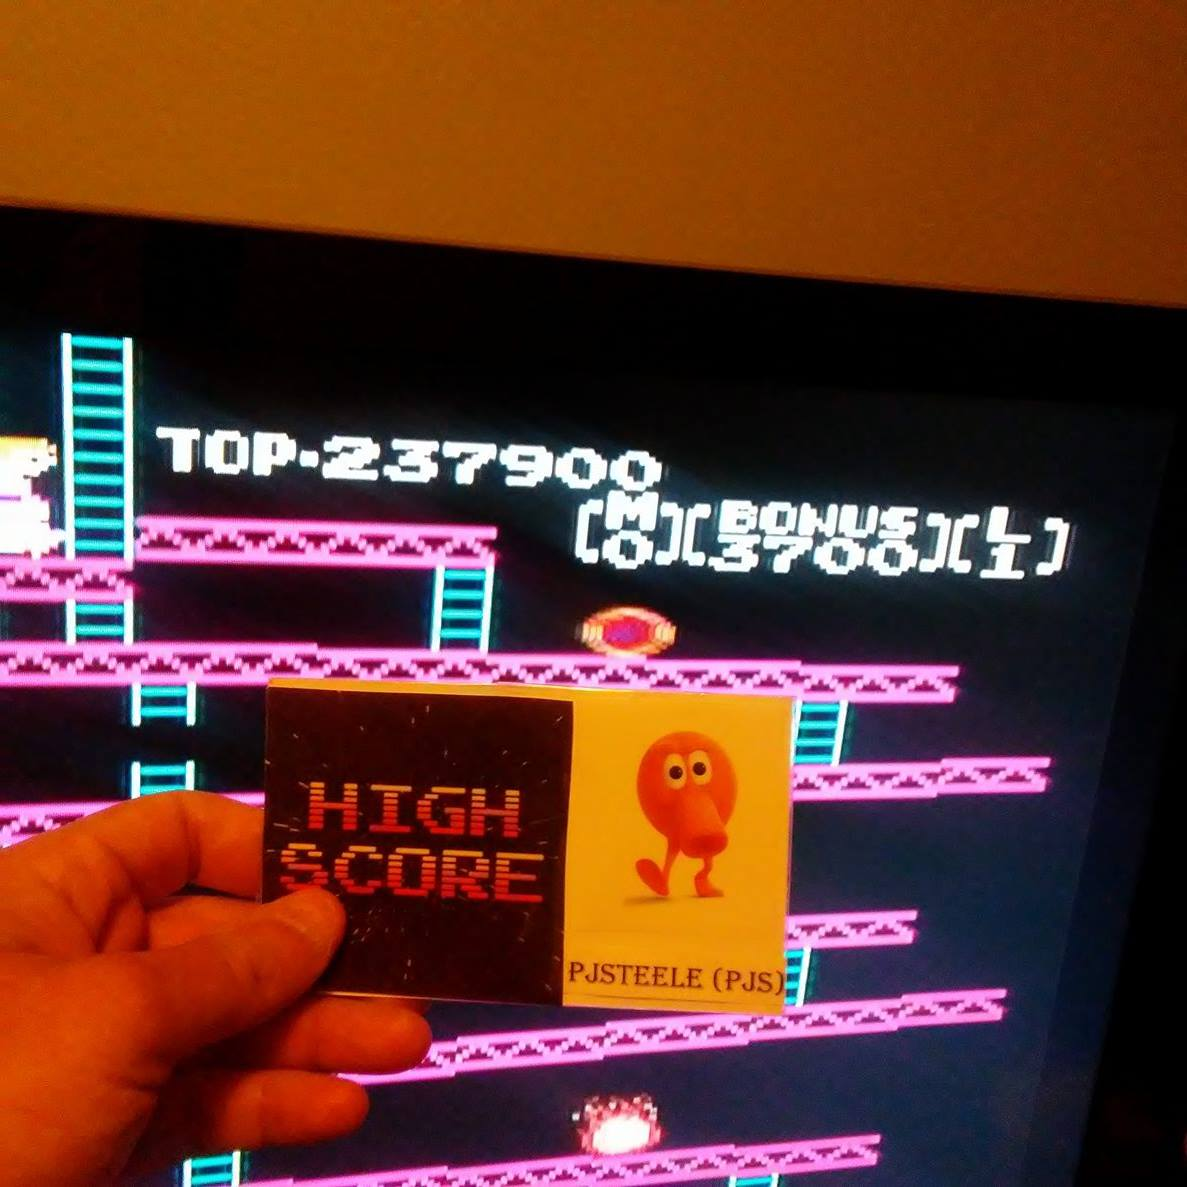 Donkey Kong 237,900 points